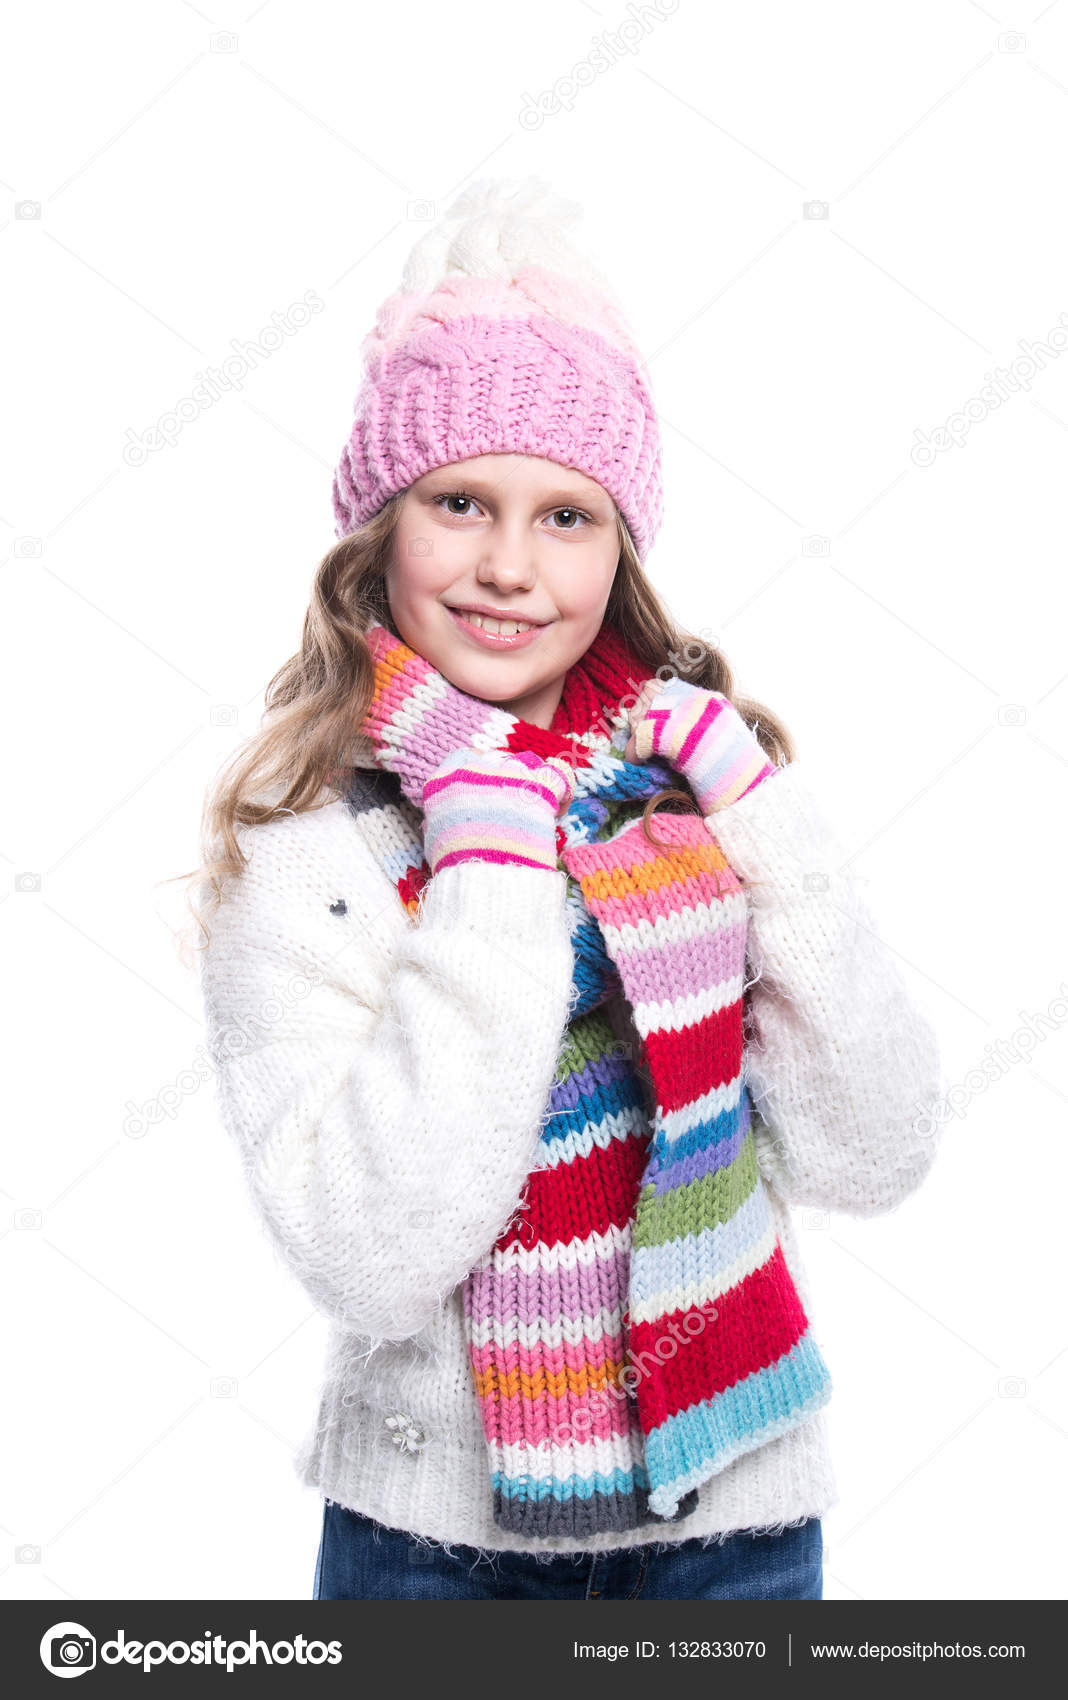 e04b05265 Smiling cute little girl wearing knitted sweater and colorful scarf ...